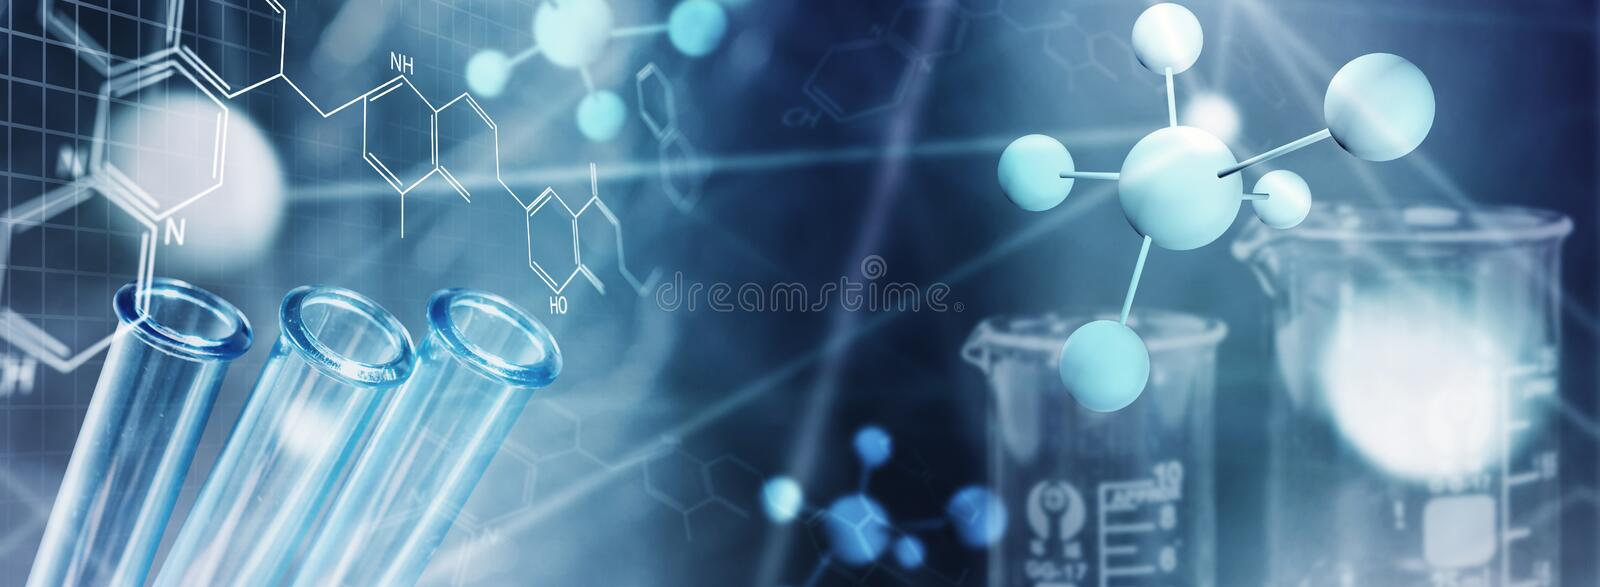 Genetic and chemical research Medicine laboratory background. Genetic and chemical research royalty free stock photos